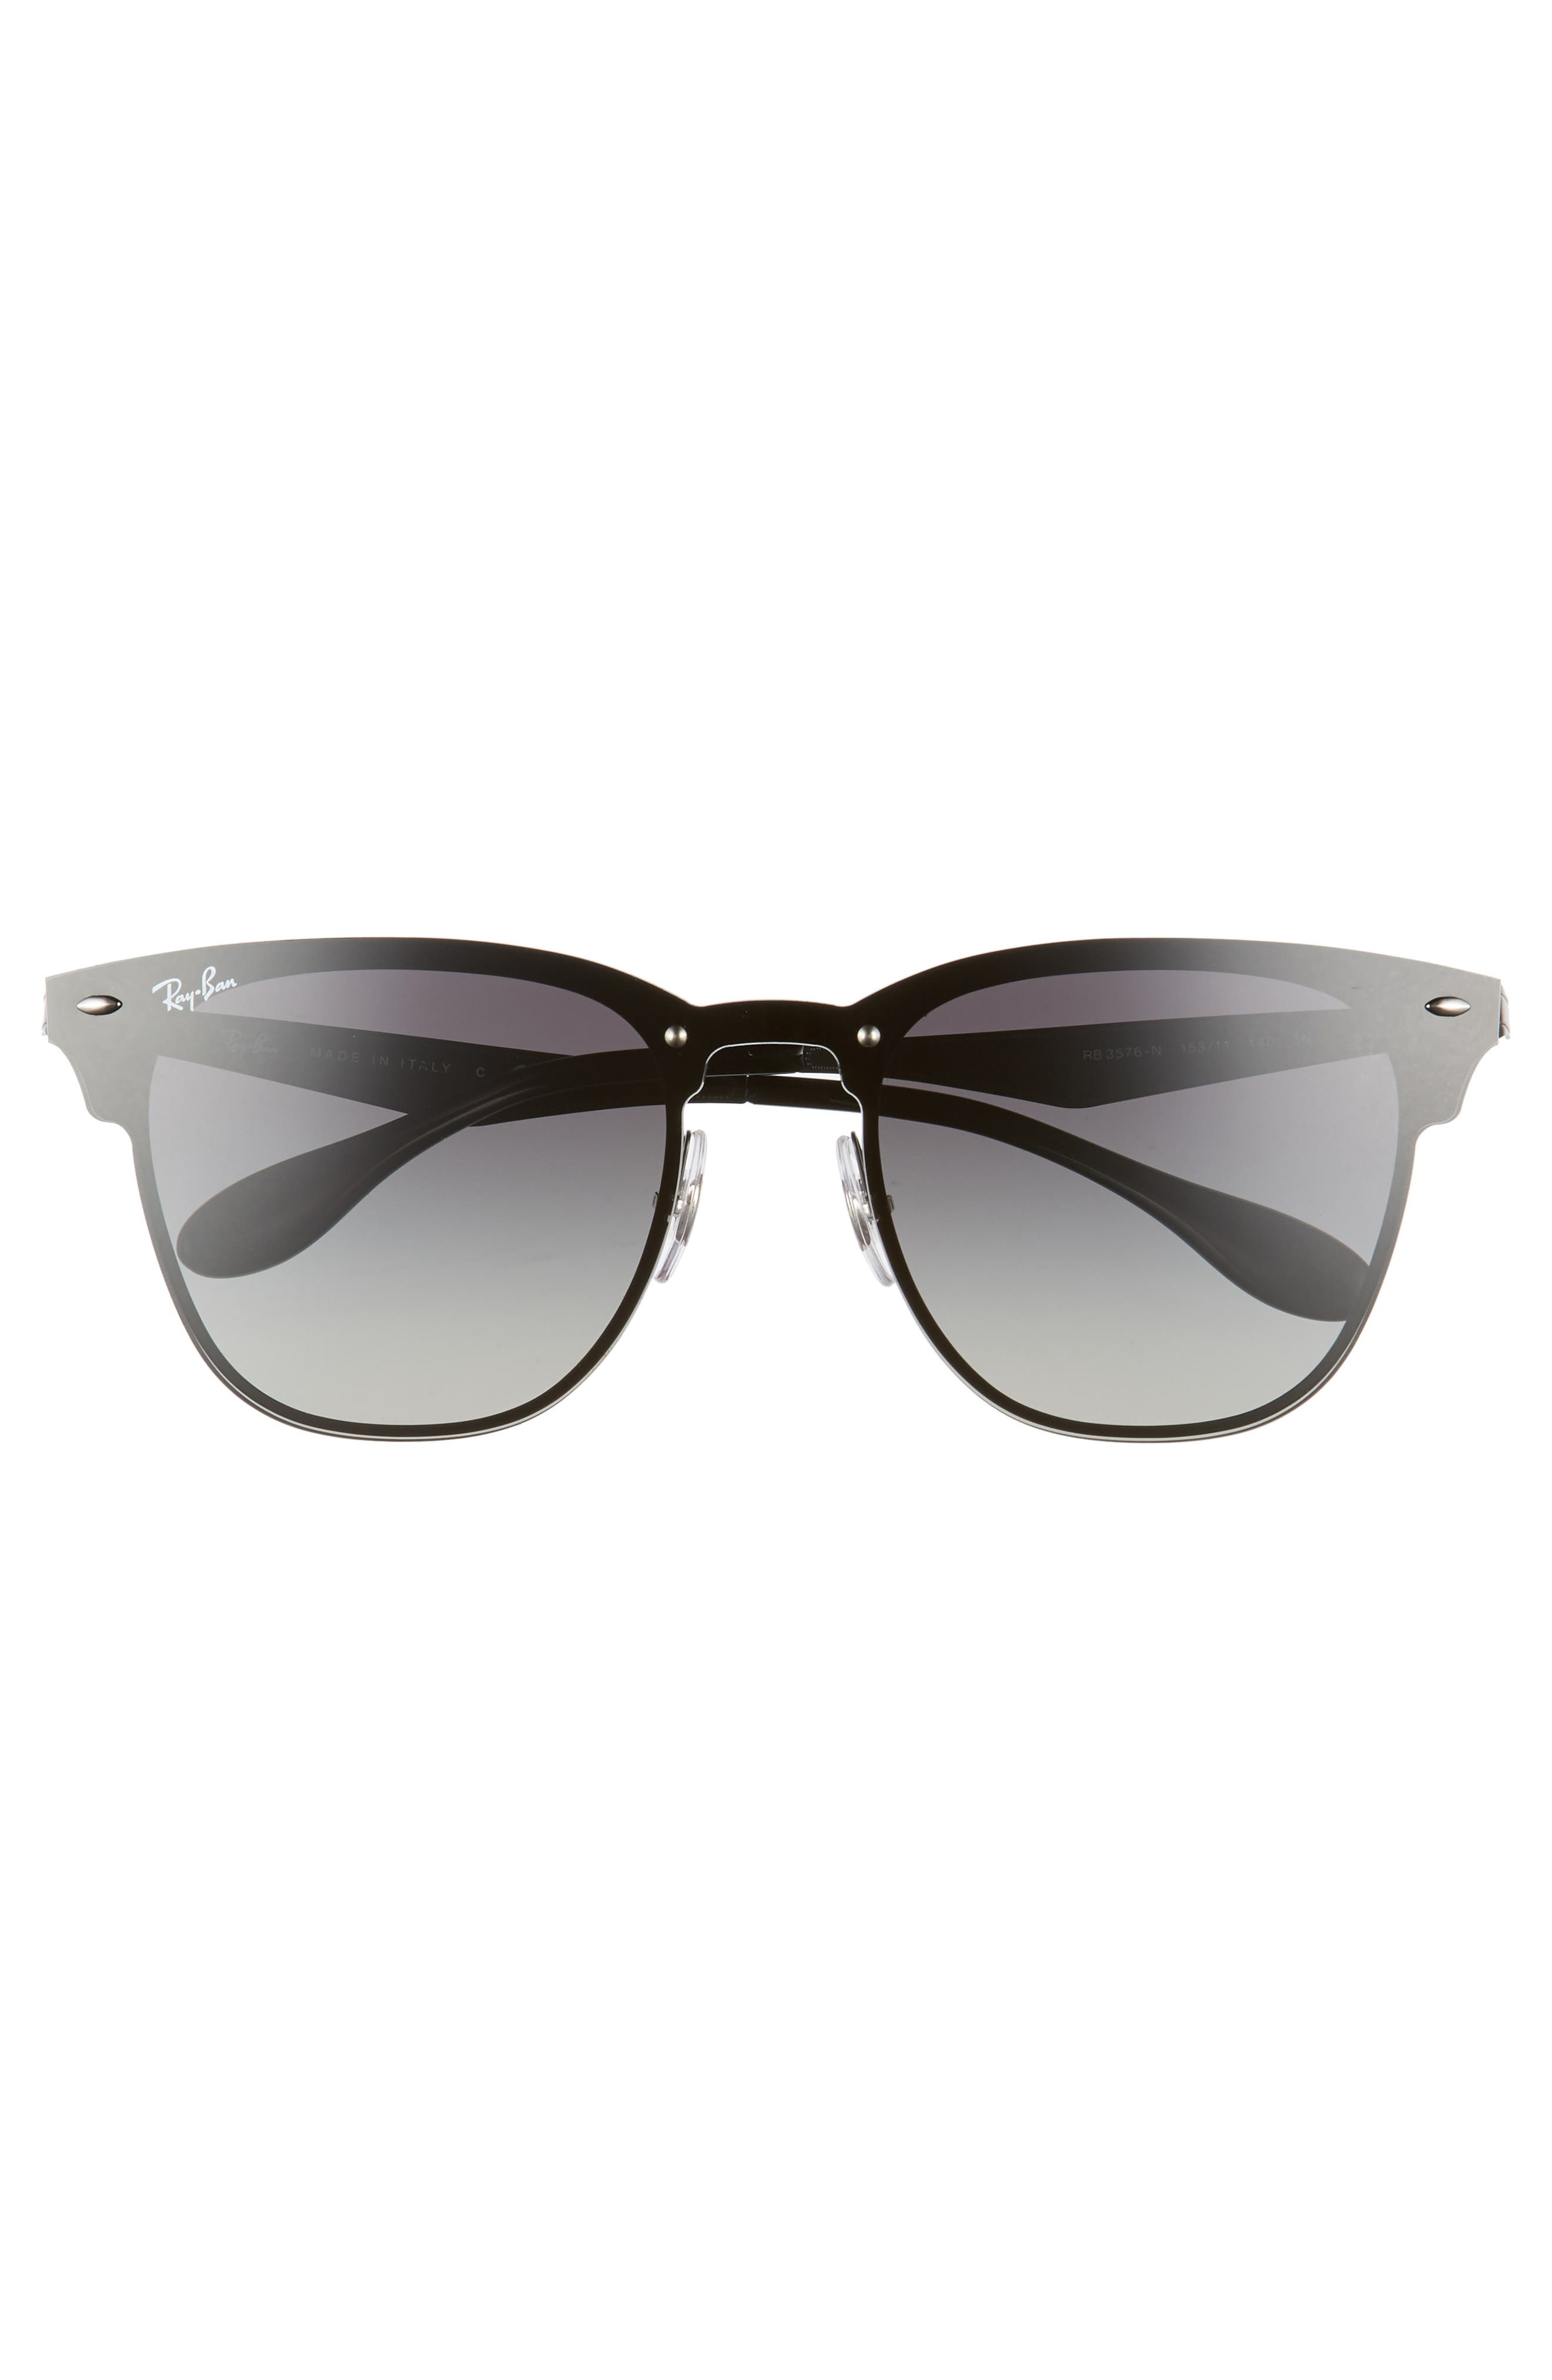 Blaze Clubmaster 47mm Sunglasses,                             Alternate thumbnail 6, color,